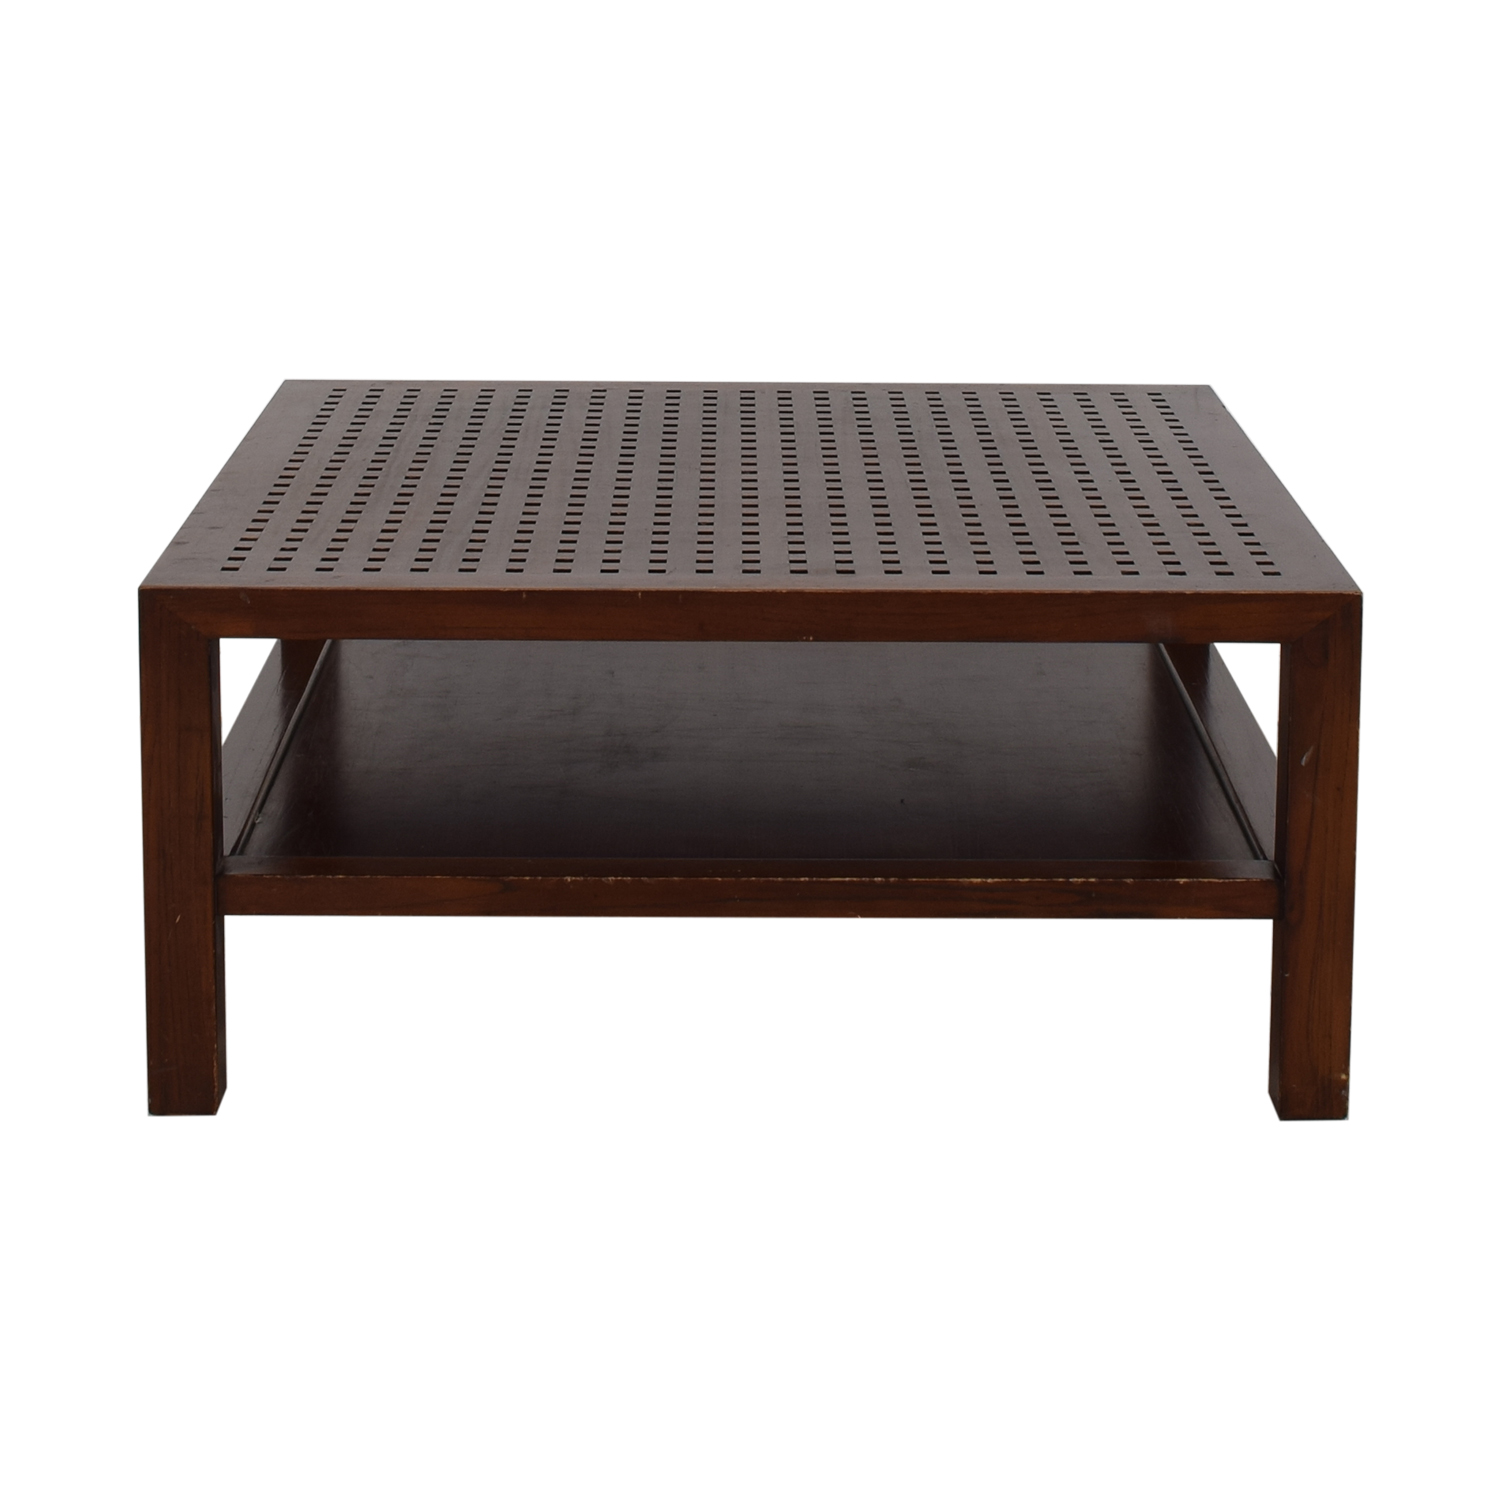 Room & Board Room & Board by Maria Yee Grid Coffee Table price